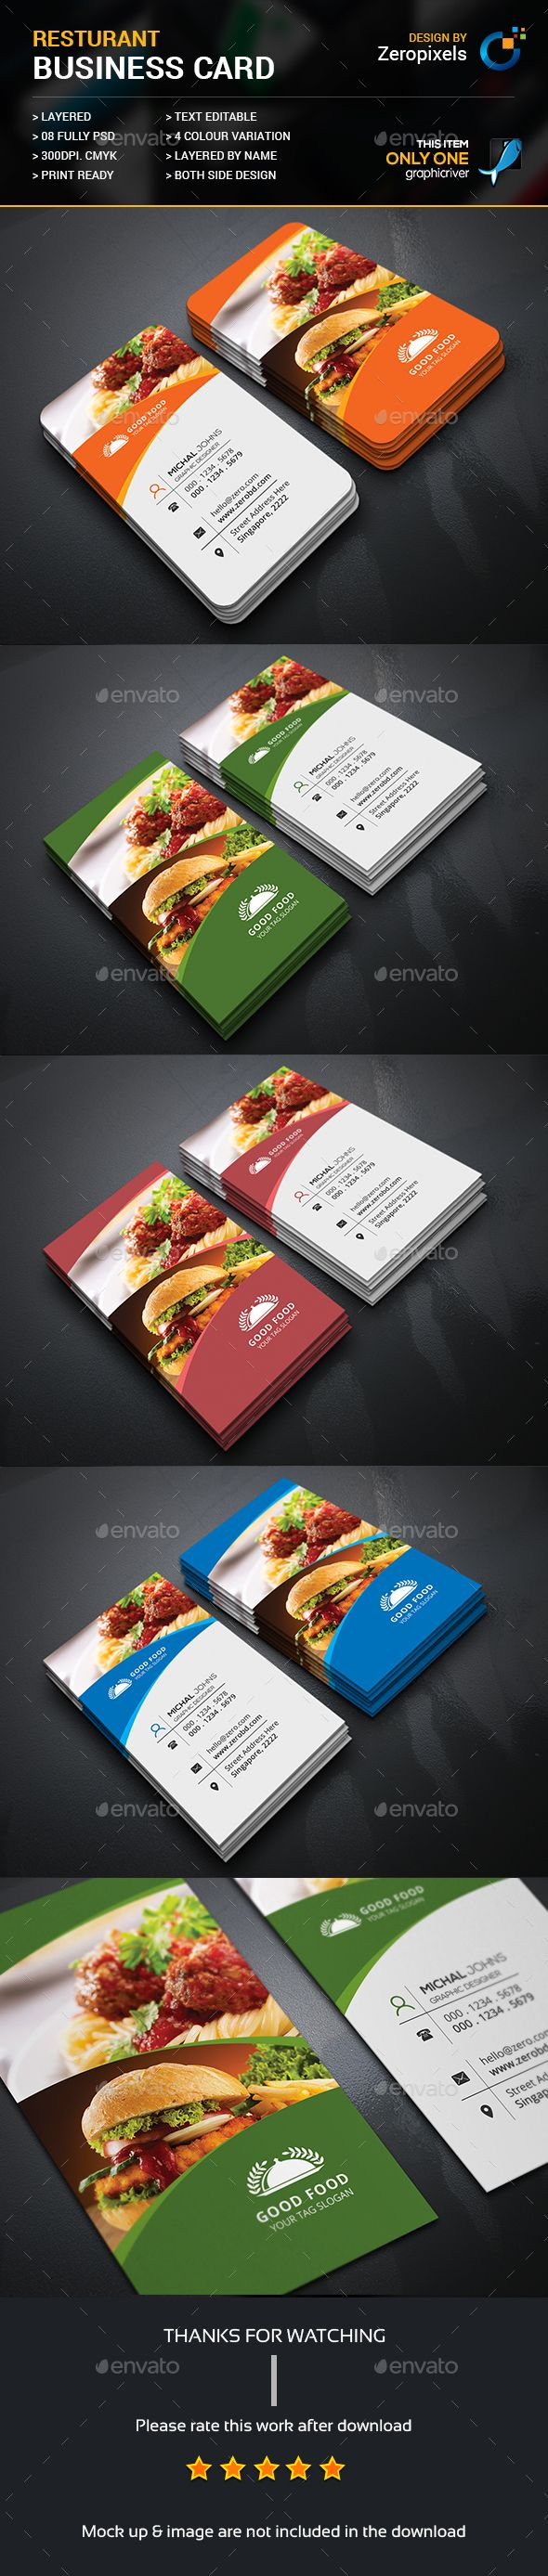 Restaurant Business Card Template PSD. Download here…